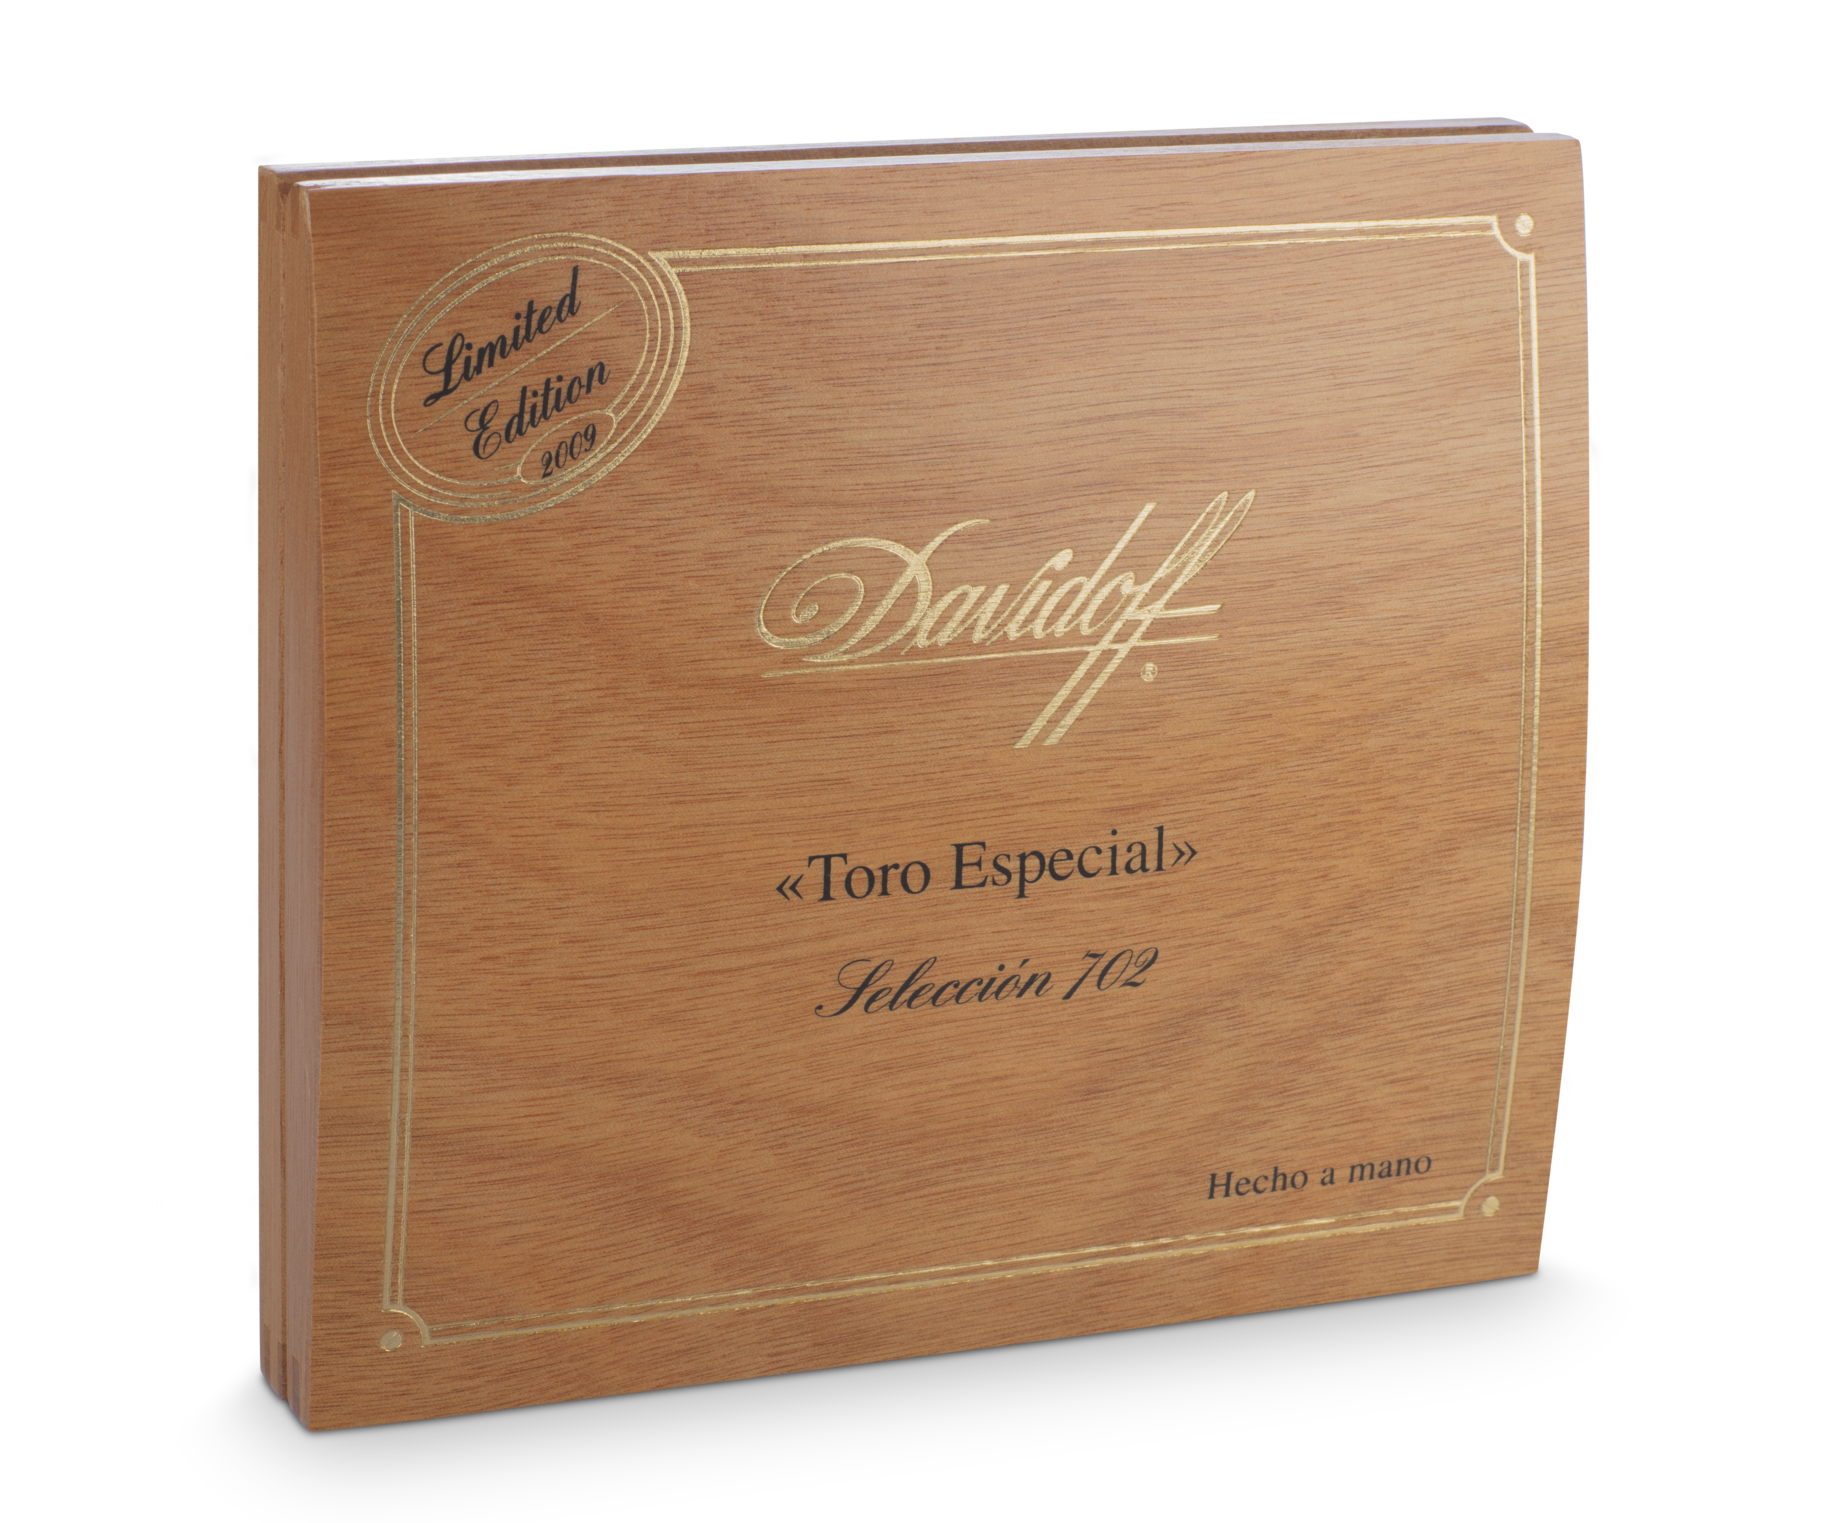 Davidoff Seleccion 702 Limited Edition 2009 - Box